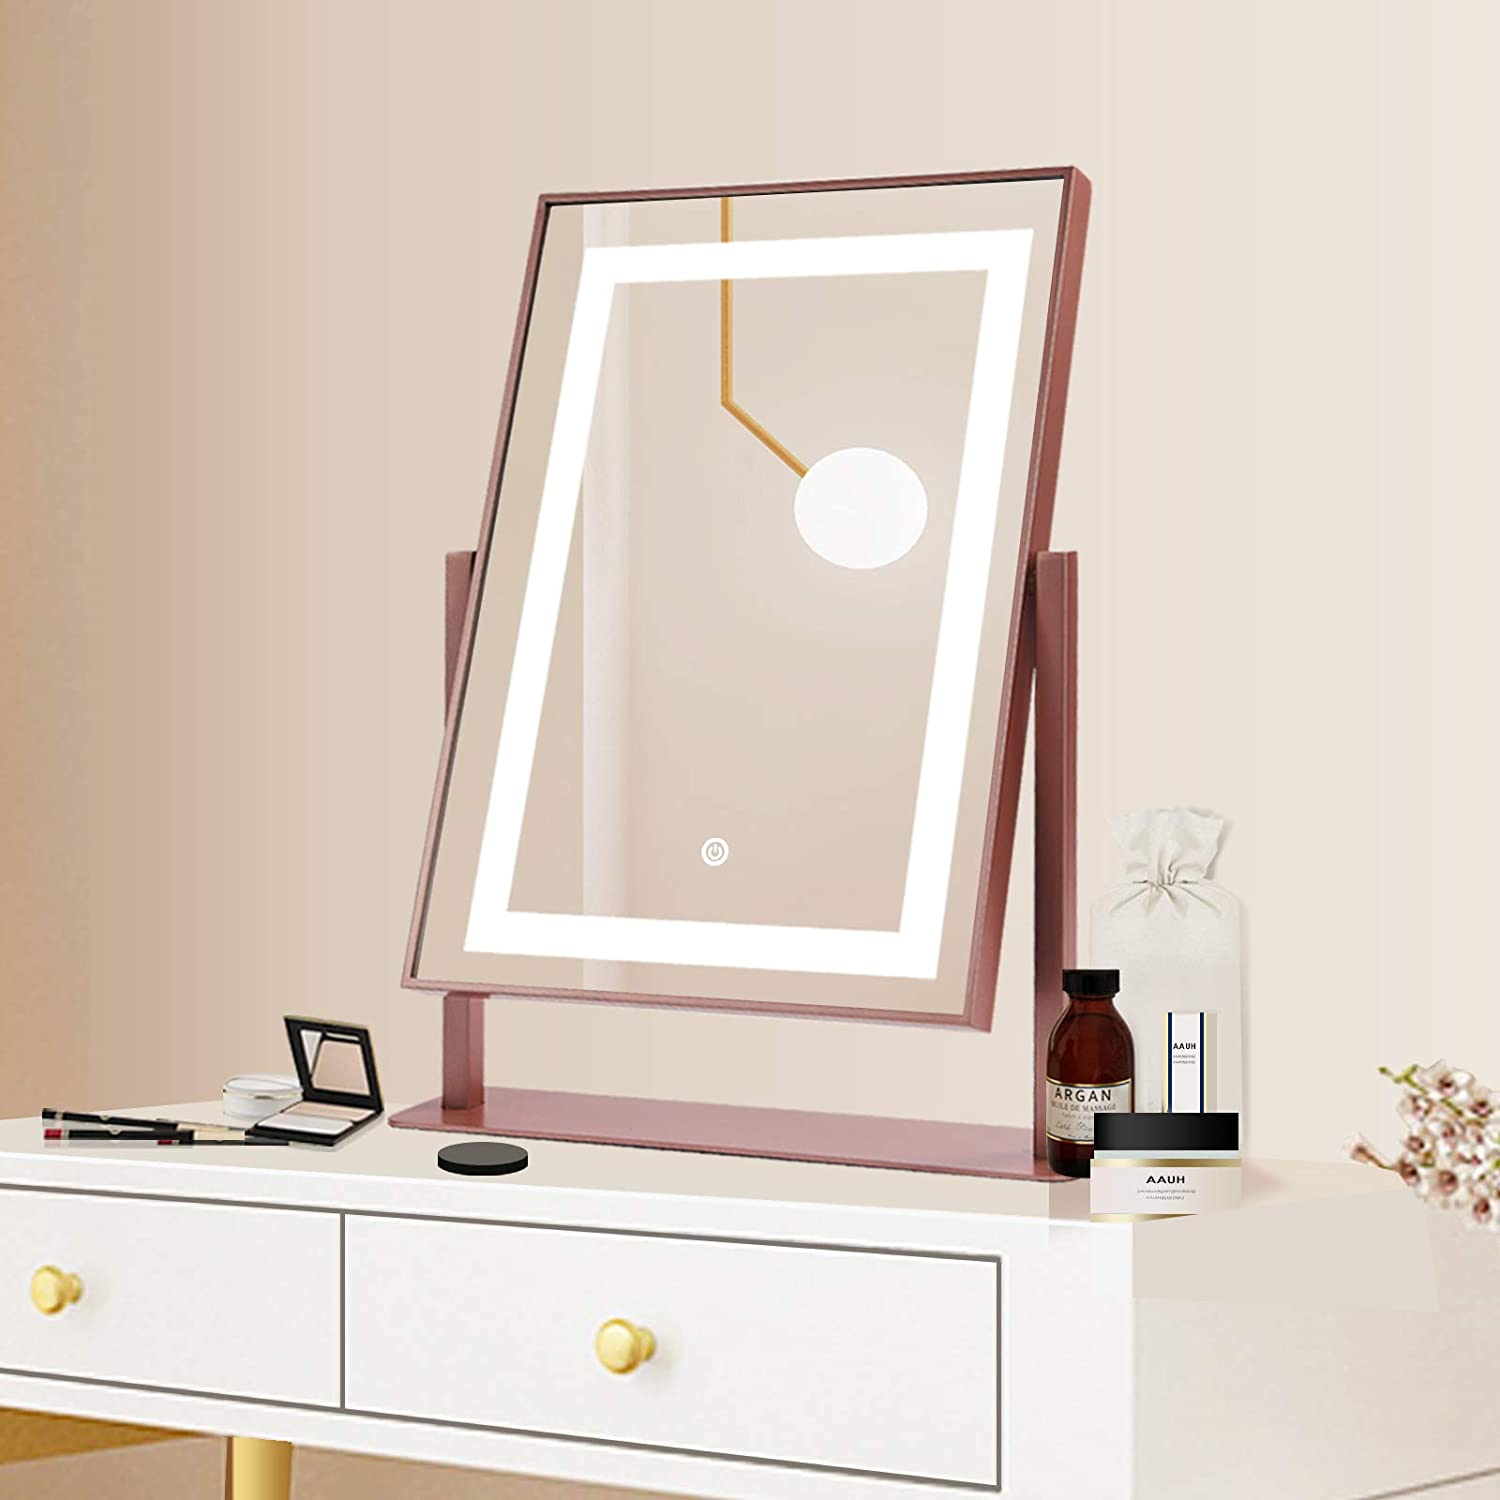 ANDY STAR 14x19 Large Rectangle Mirror Max Mail order 85% OFF Lights with Vanity Light